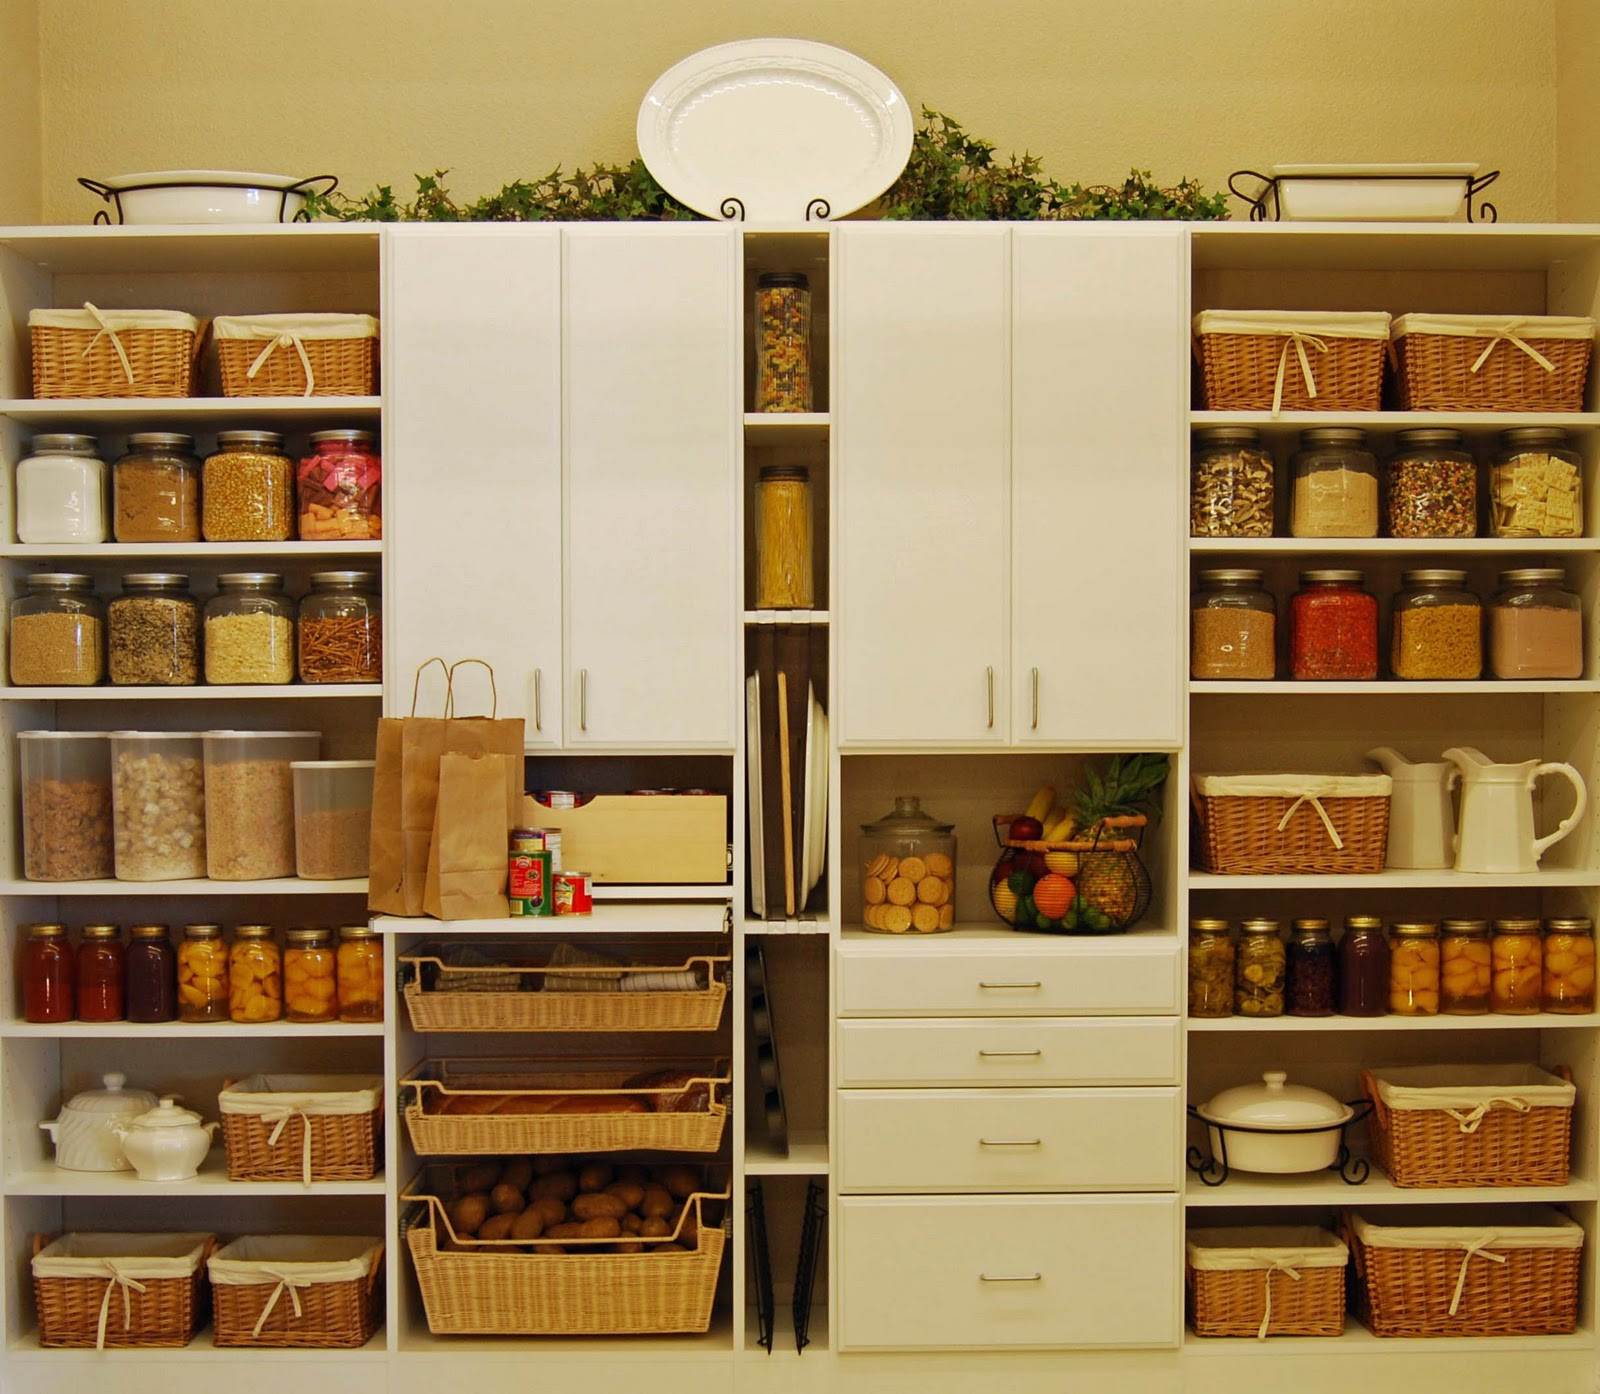 Best ideas about Pantry Shelf Spacing . Save or Pin 15 Kitchen Pantry Ideas With Form And Function Now.